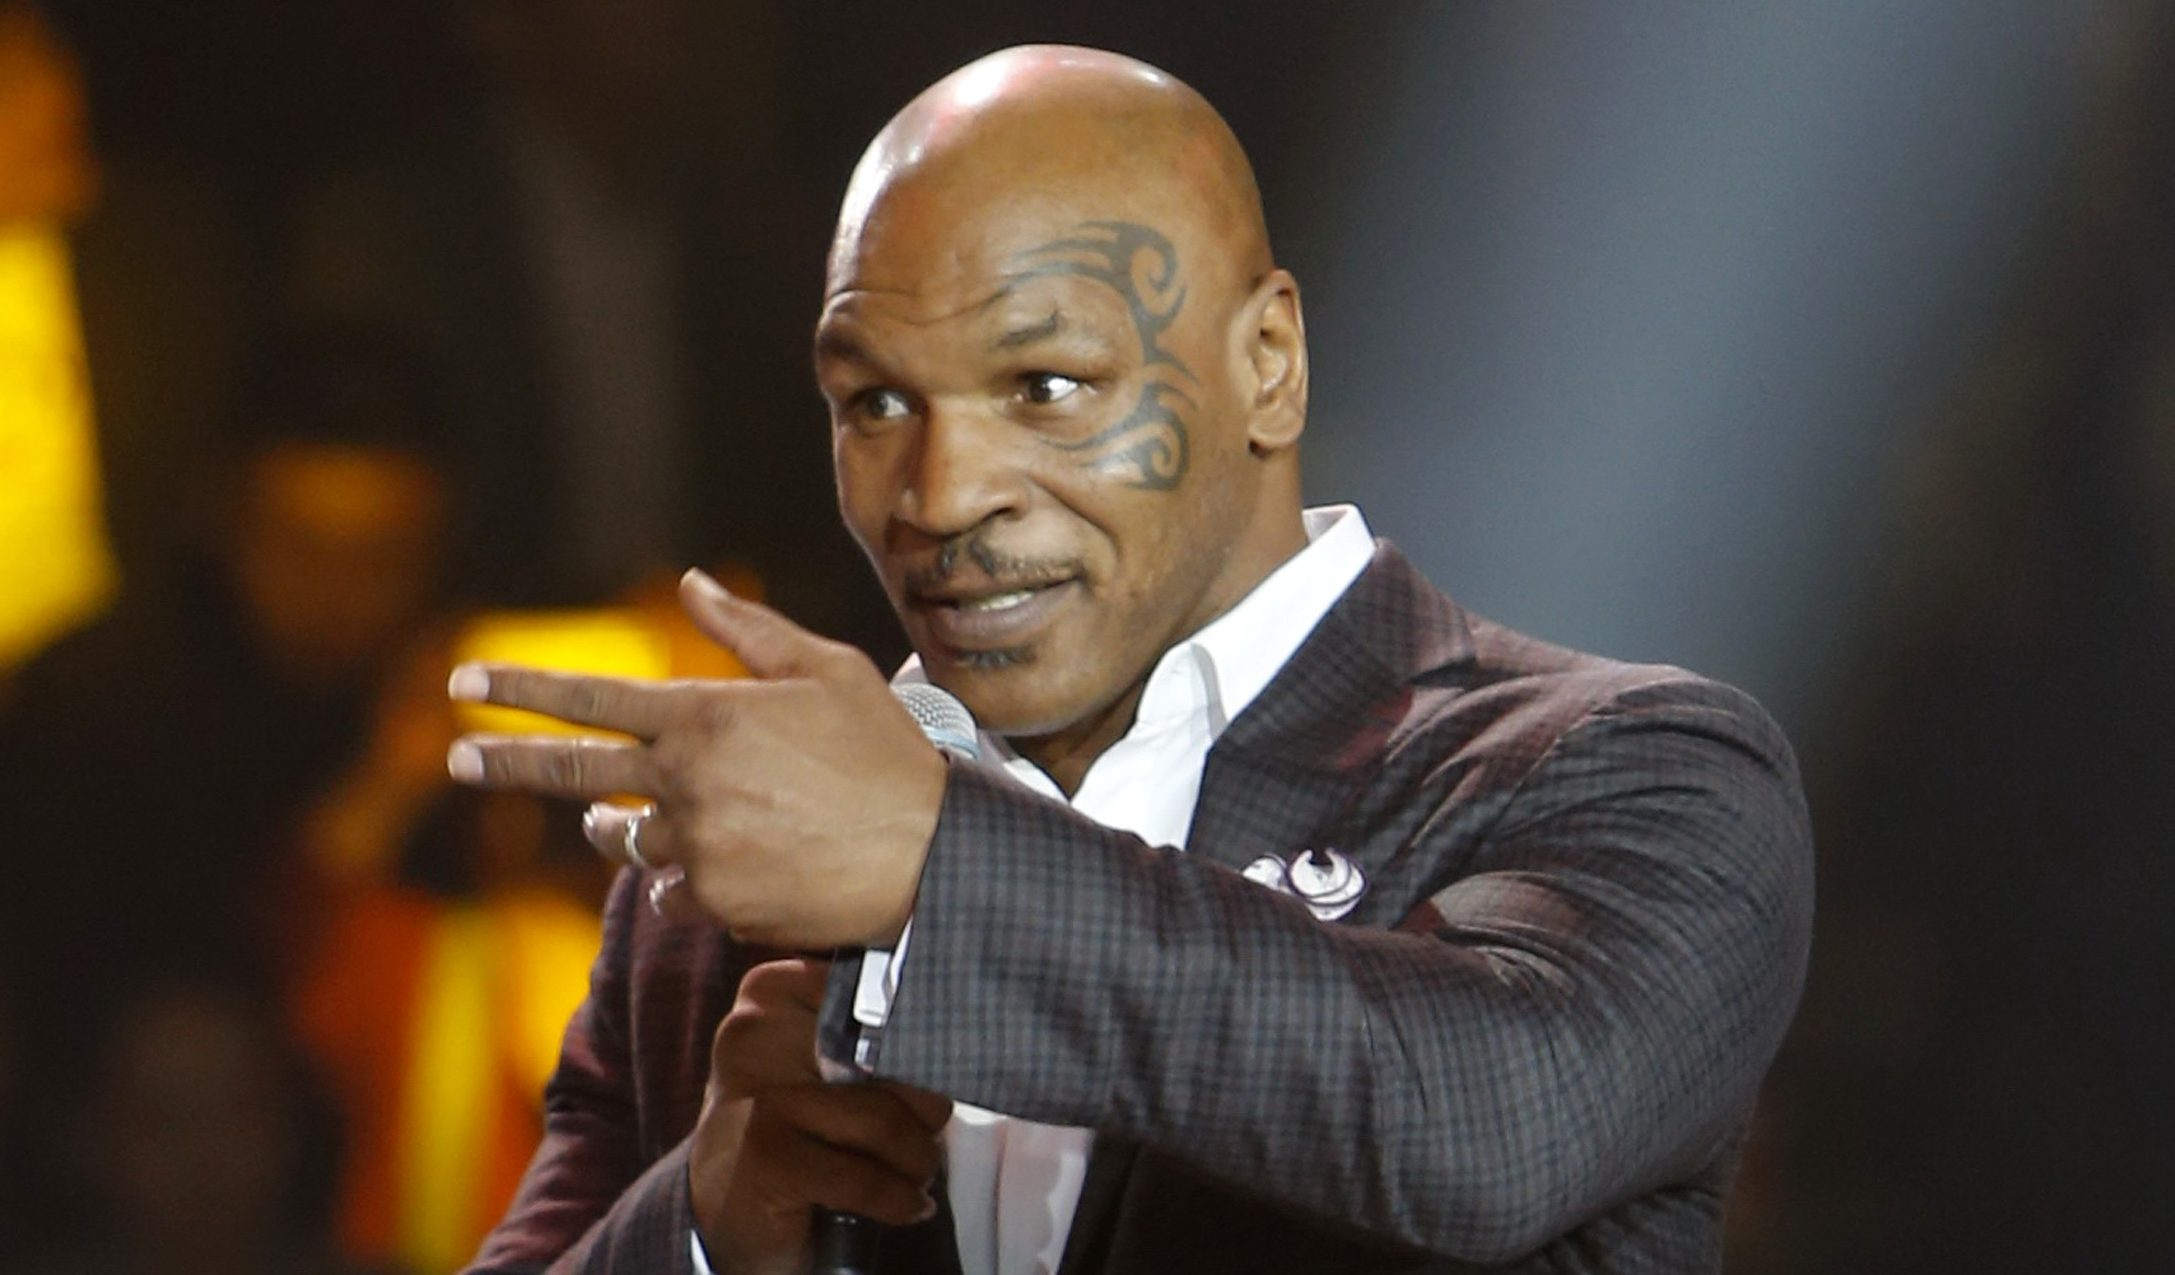 Mike Tyson to endorse MMA League in India